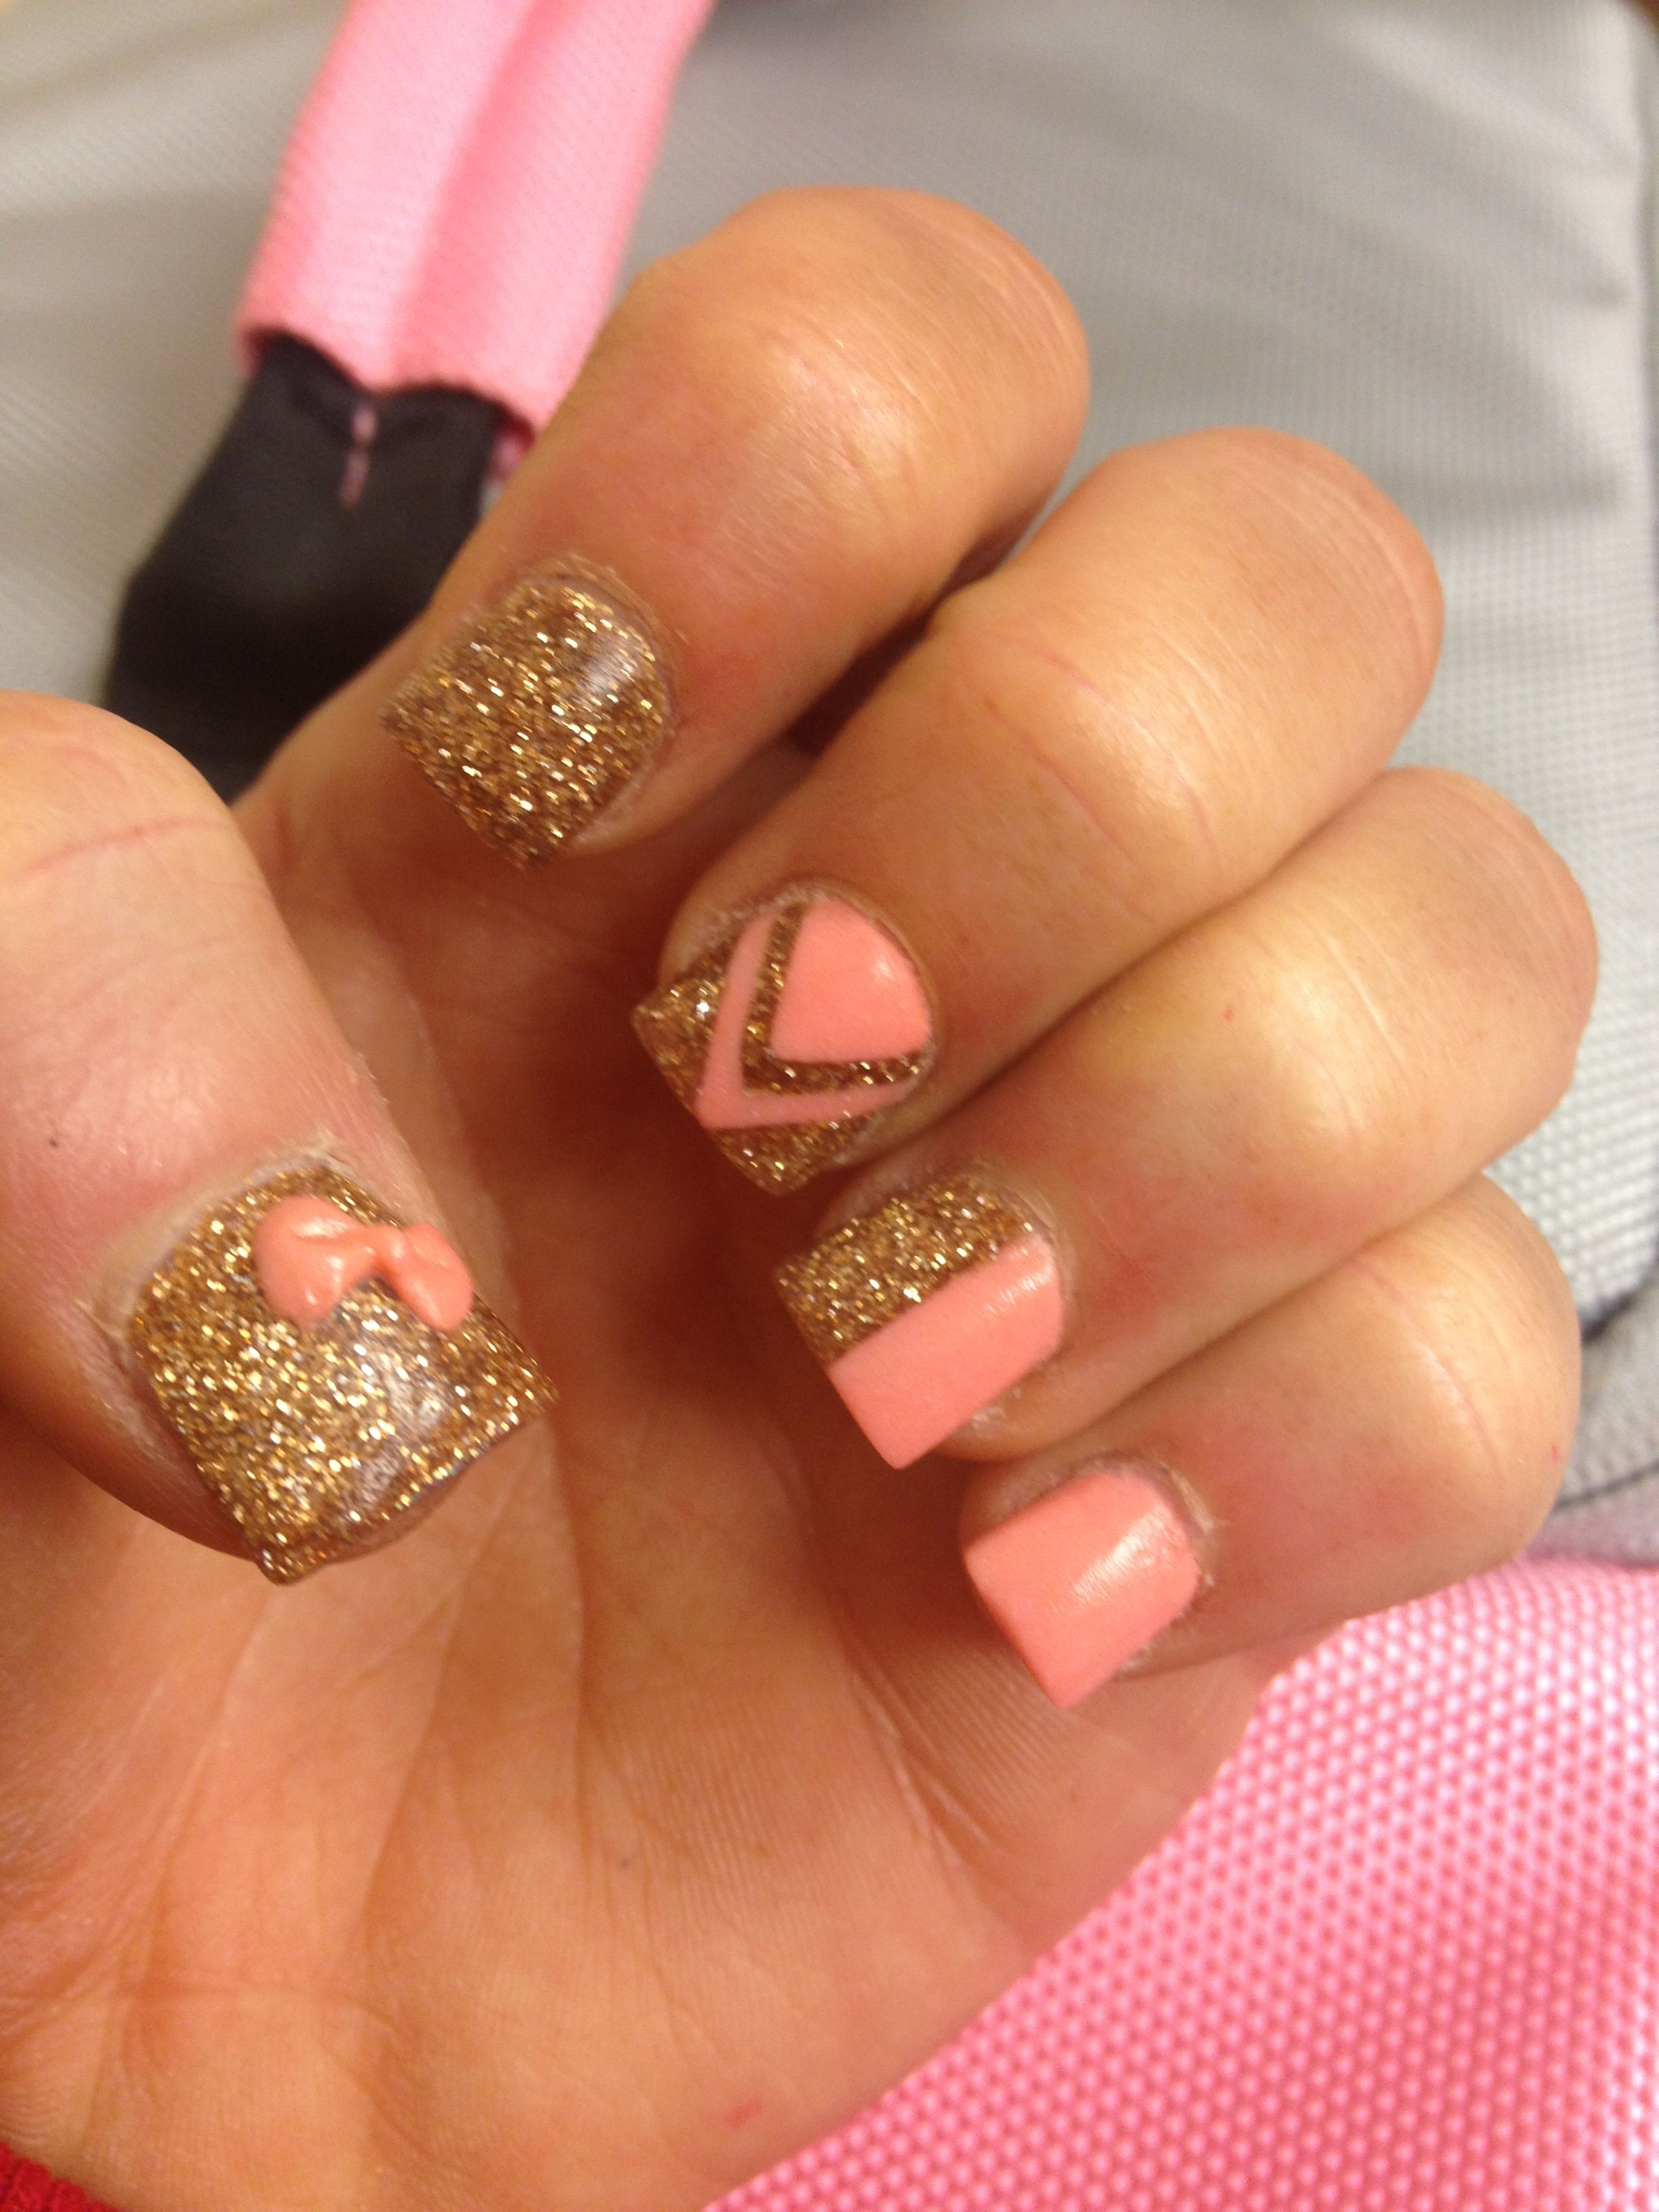 Communication on this topic: Top 50 Acrylic Nail Designs, top-50-acrylic-nail-designs/